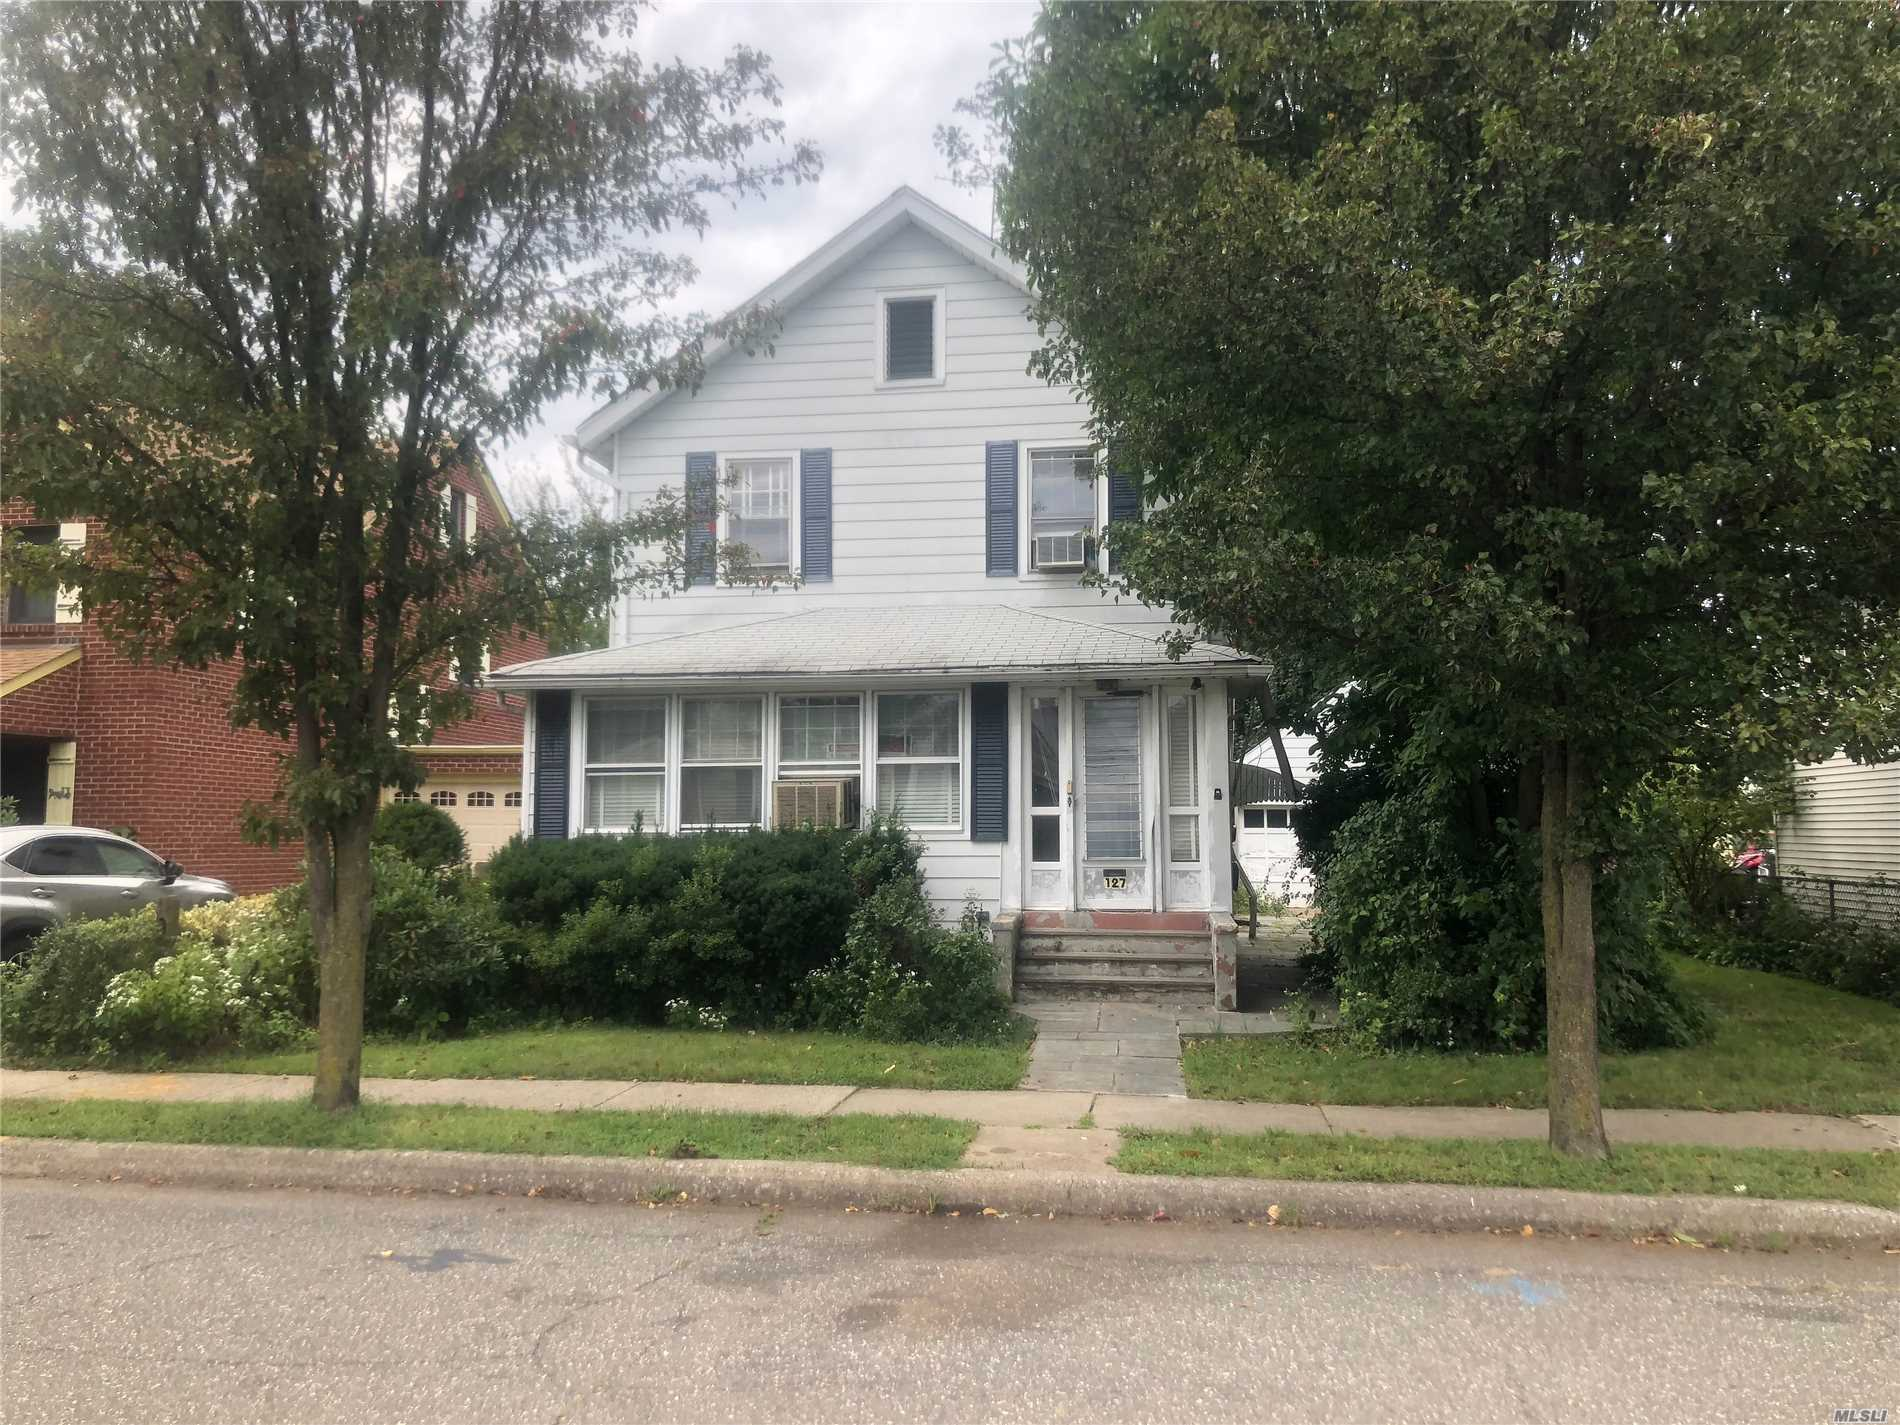 Don't Miss Your Chance At This Chraming 3Br, 1Ba Colonial In Manhasset. Location, Location, Walking Distance To Lirr, Town, Shopping And Much More. House Needs Updating / Tlc. Bring Your Imagination!! This Home Will Not Last At This Price!!